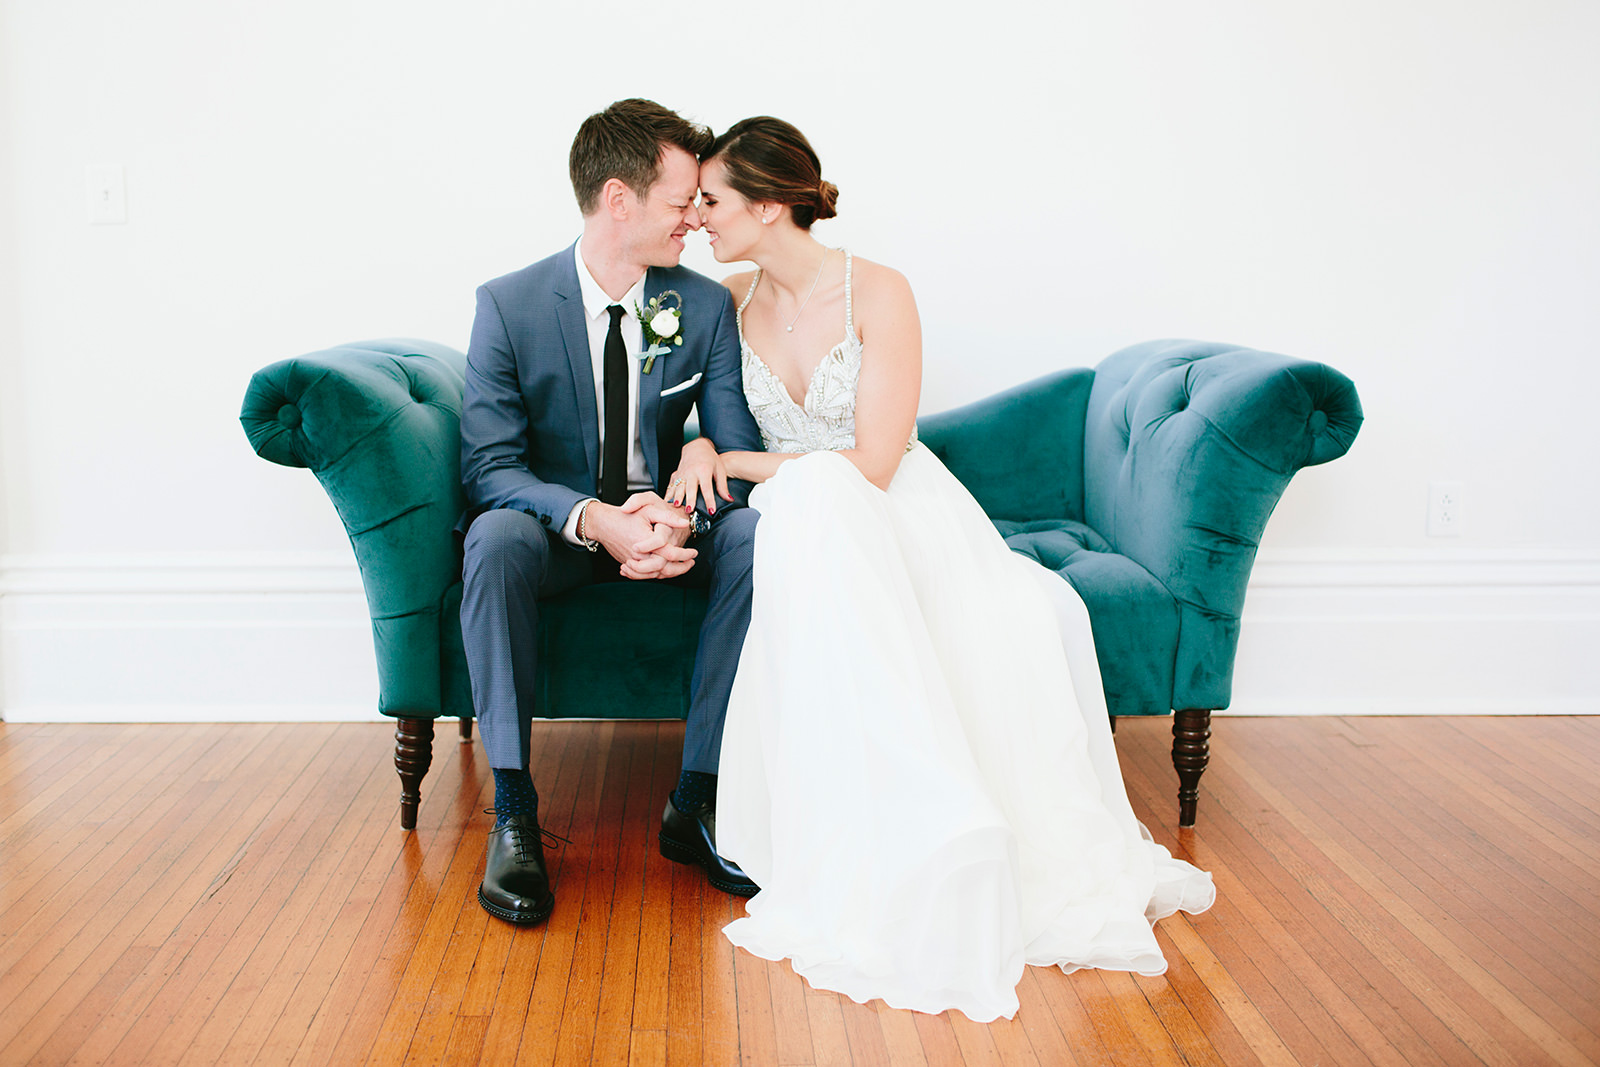 teal couch wedding rental